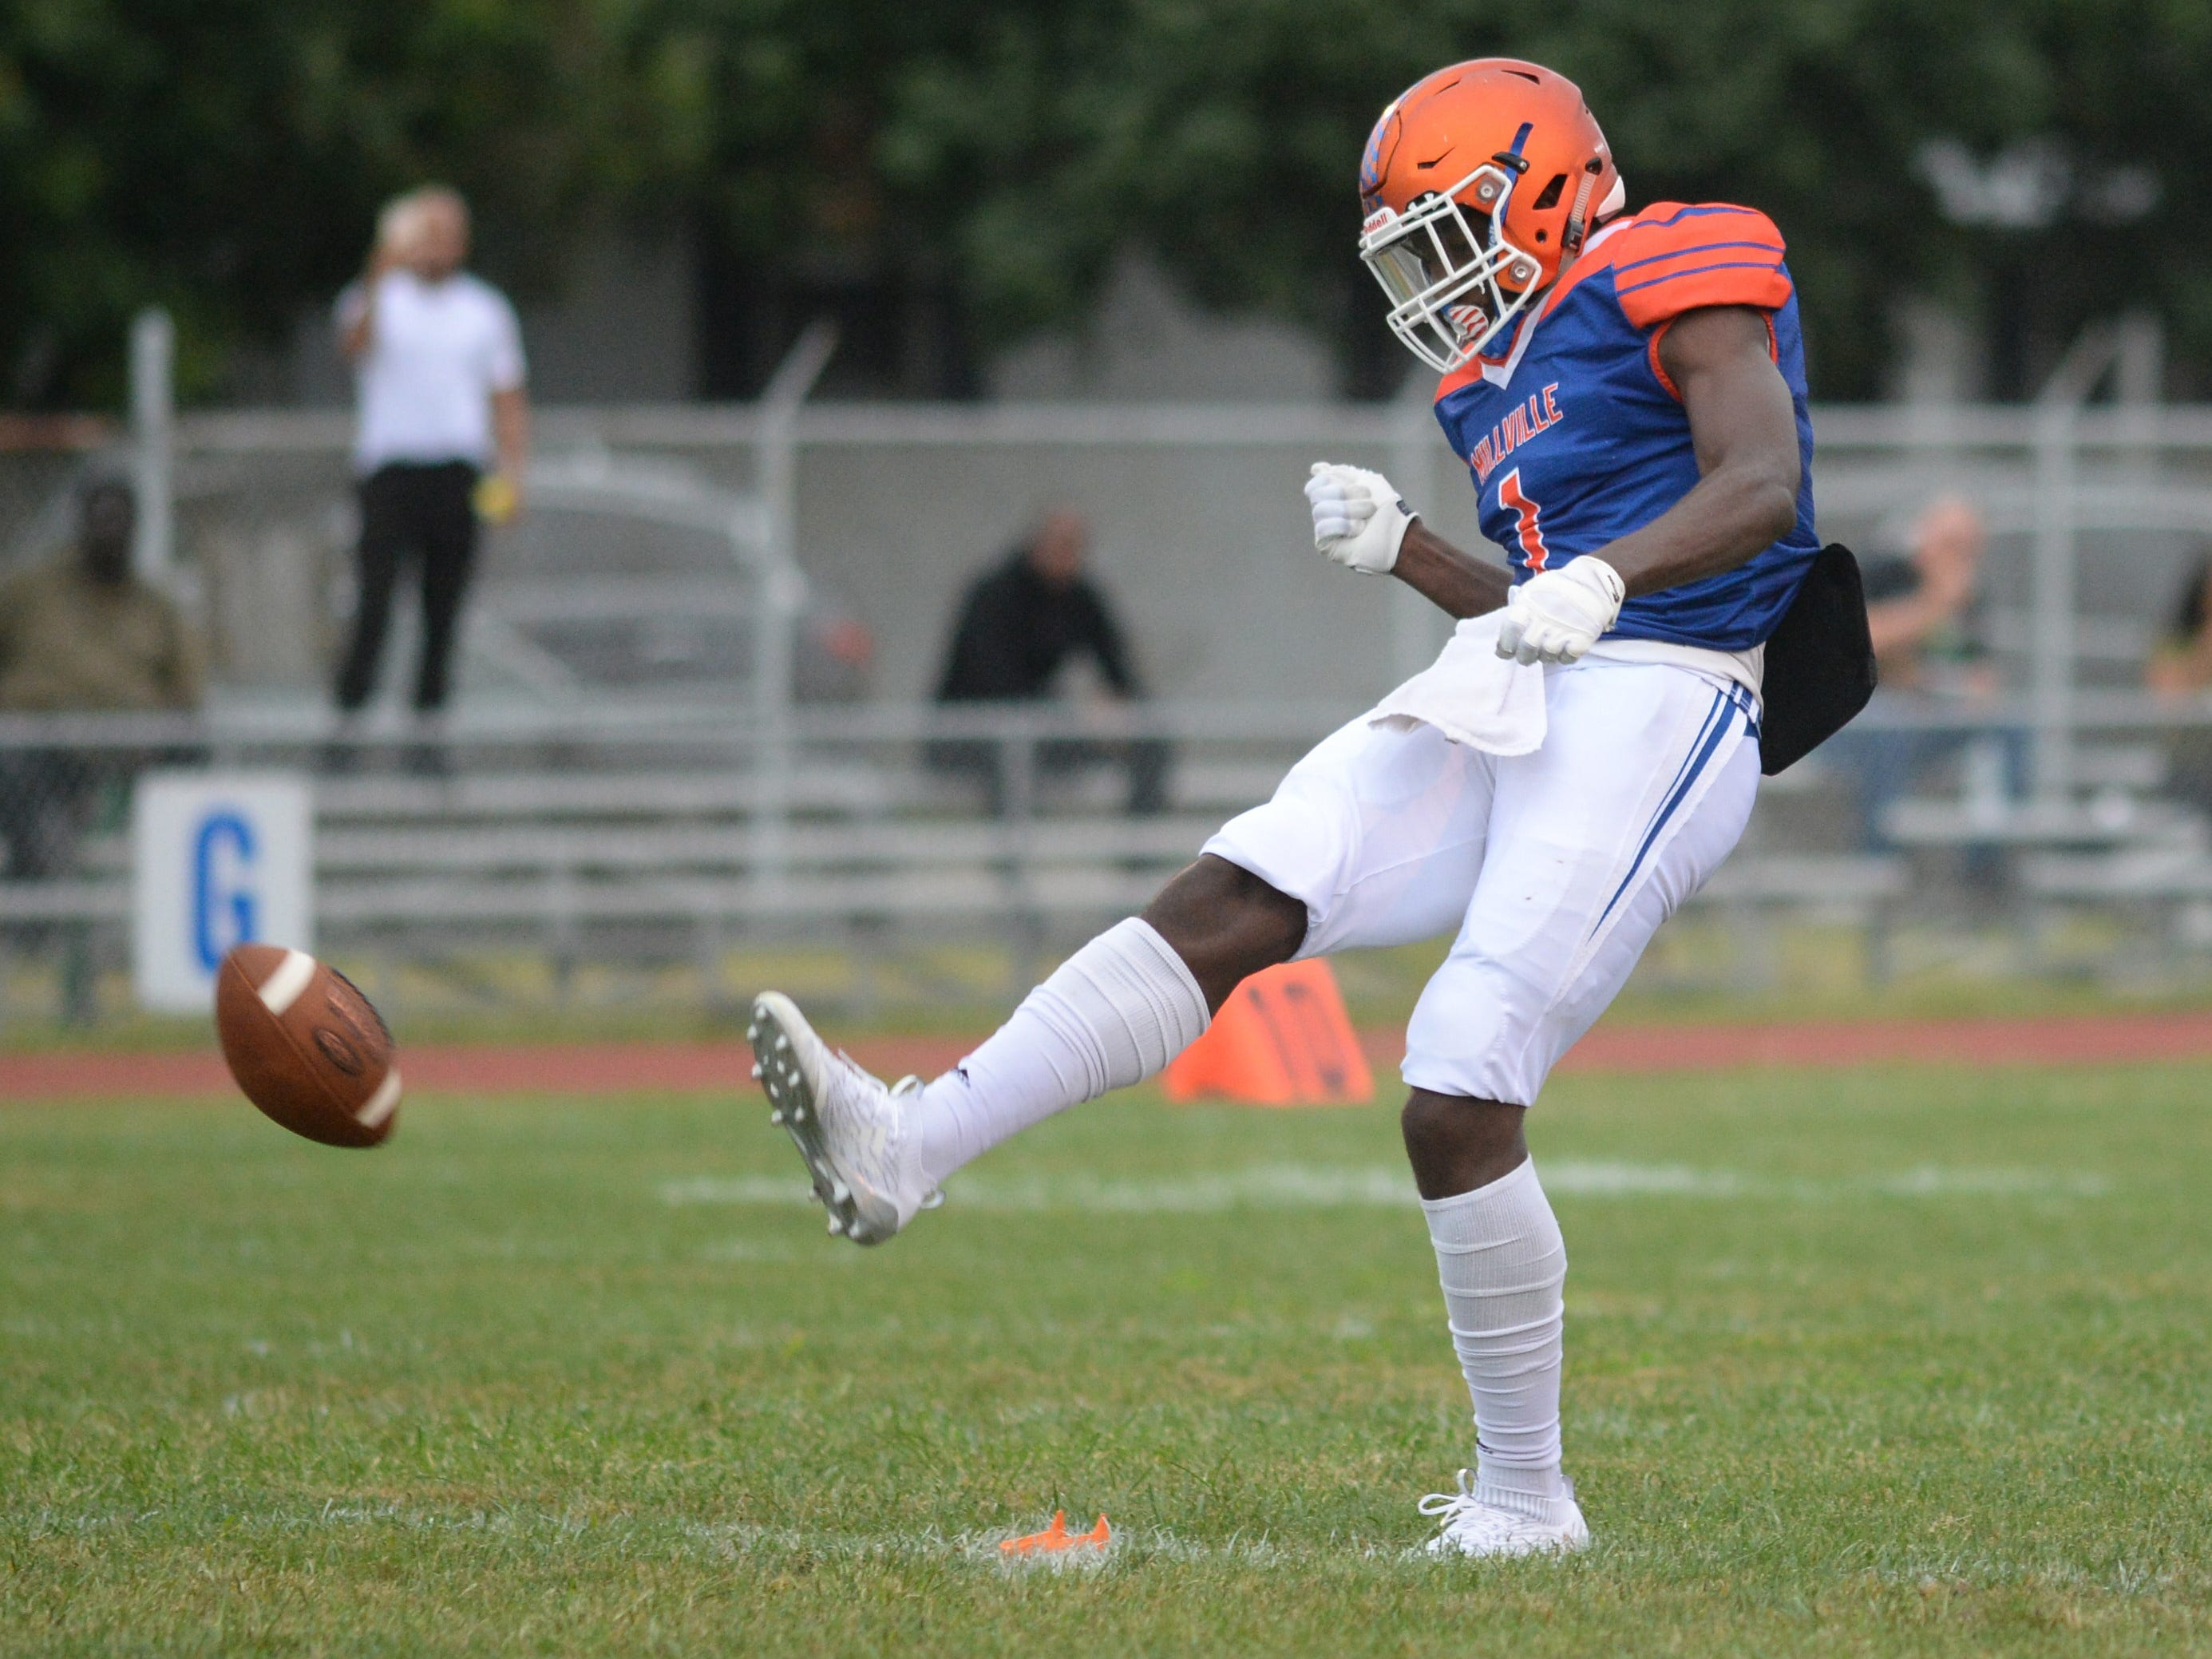 Millville's Solomon DeShields kicks the ball off to start the season opening football game against St. Peter's Prep at Millville Memorial High School, Friday, Aug. 31, 2018.